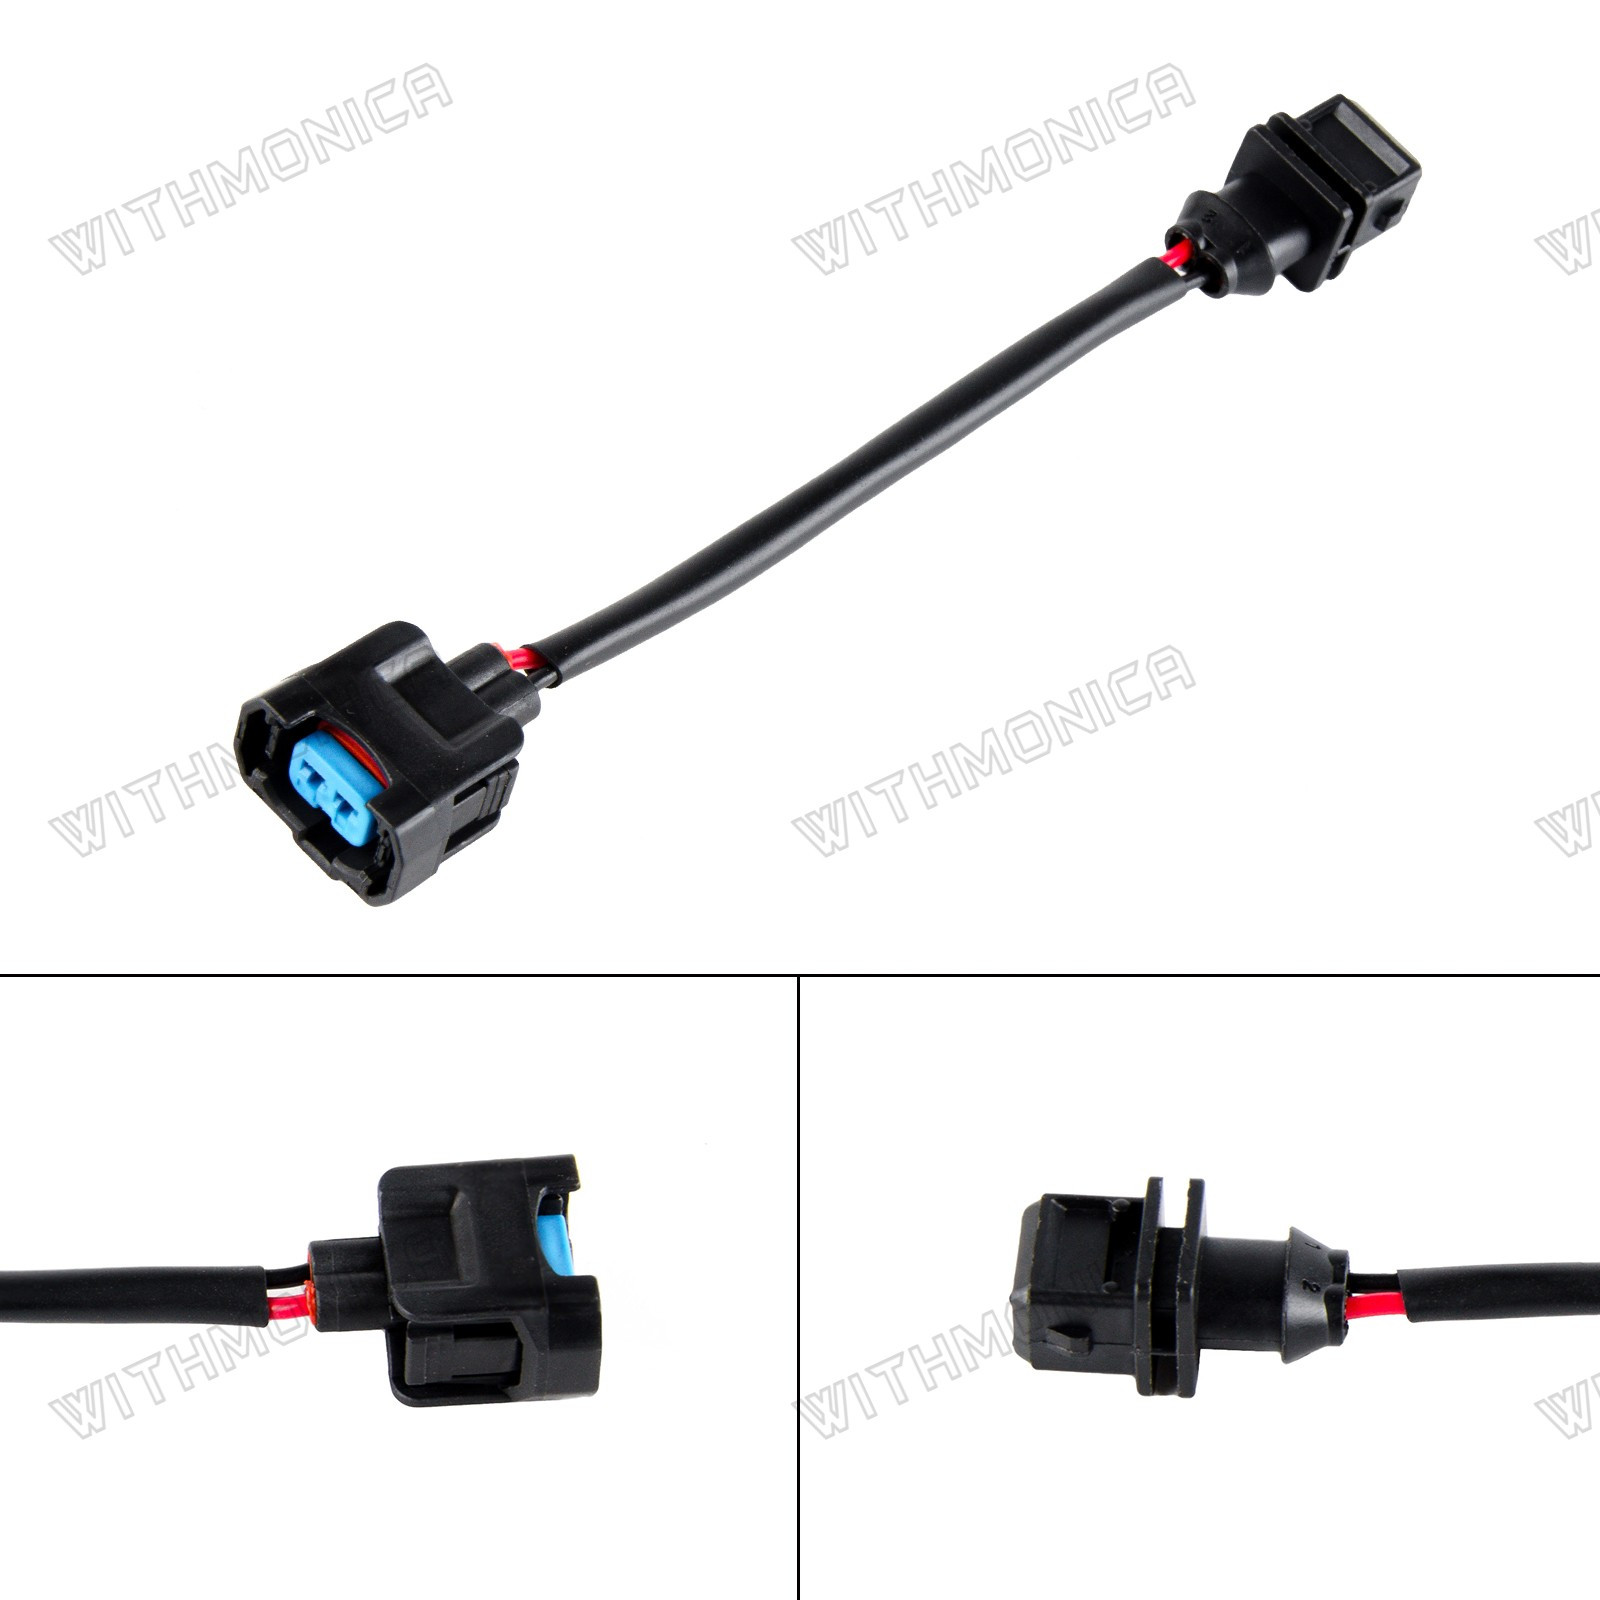 Obd1 To Obd2 Ev1 Fuel Injector Conversion Jumper Harness Adapter Plug For Honda